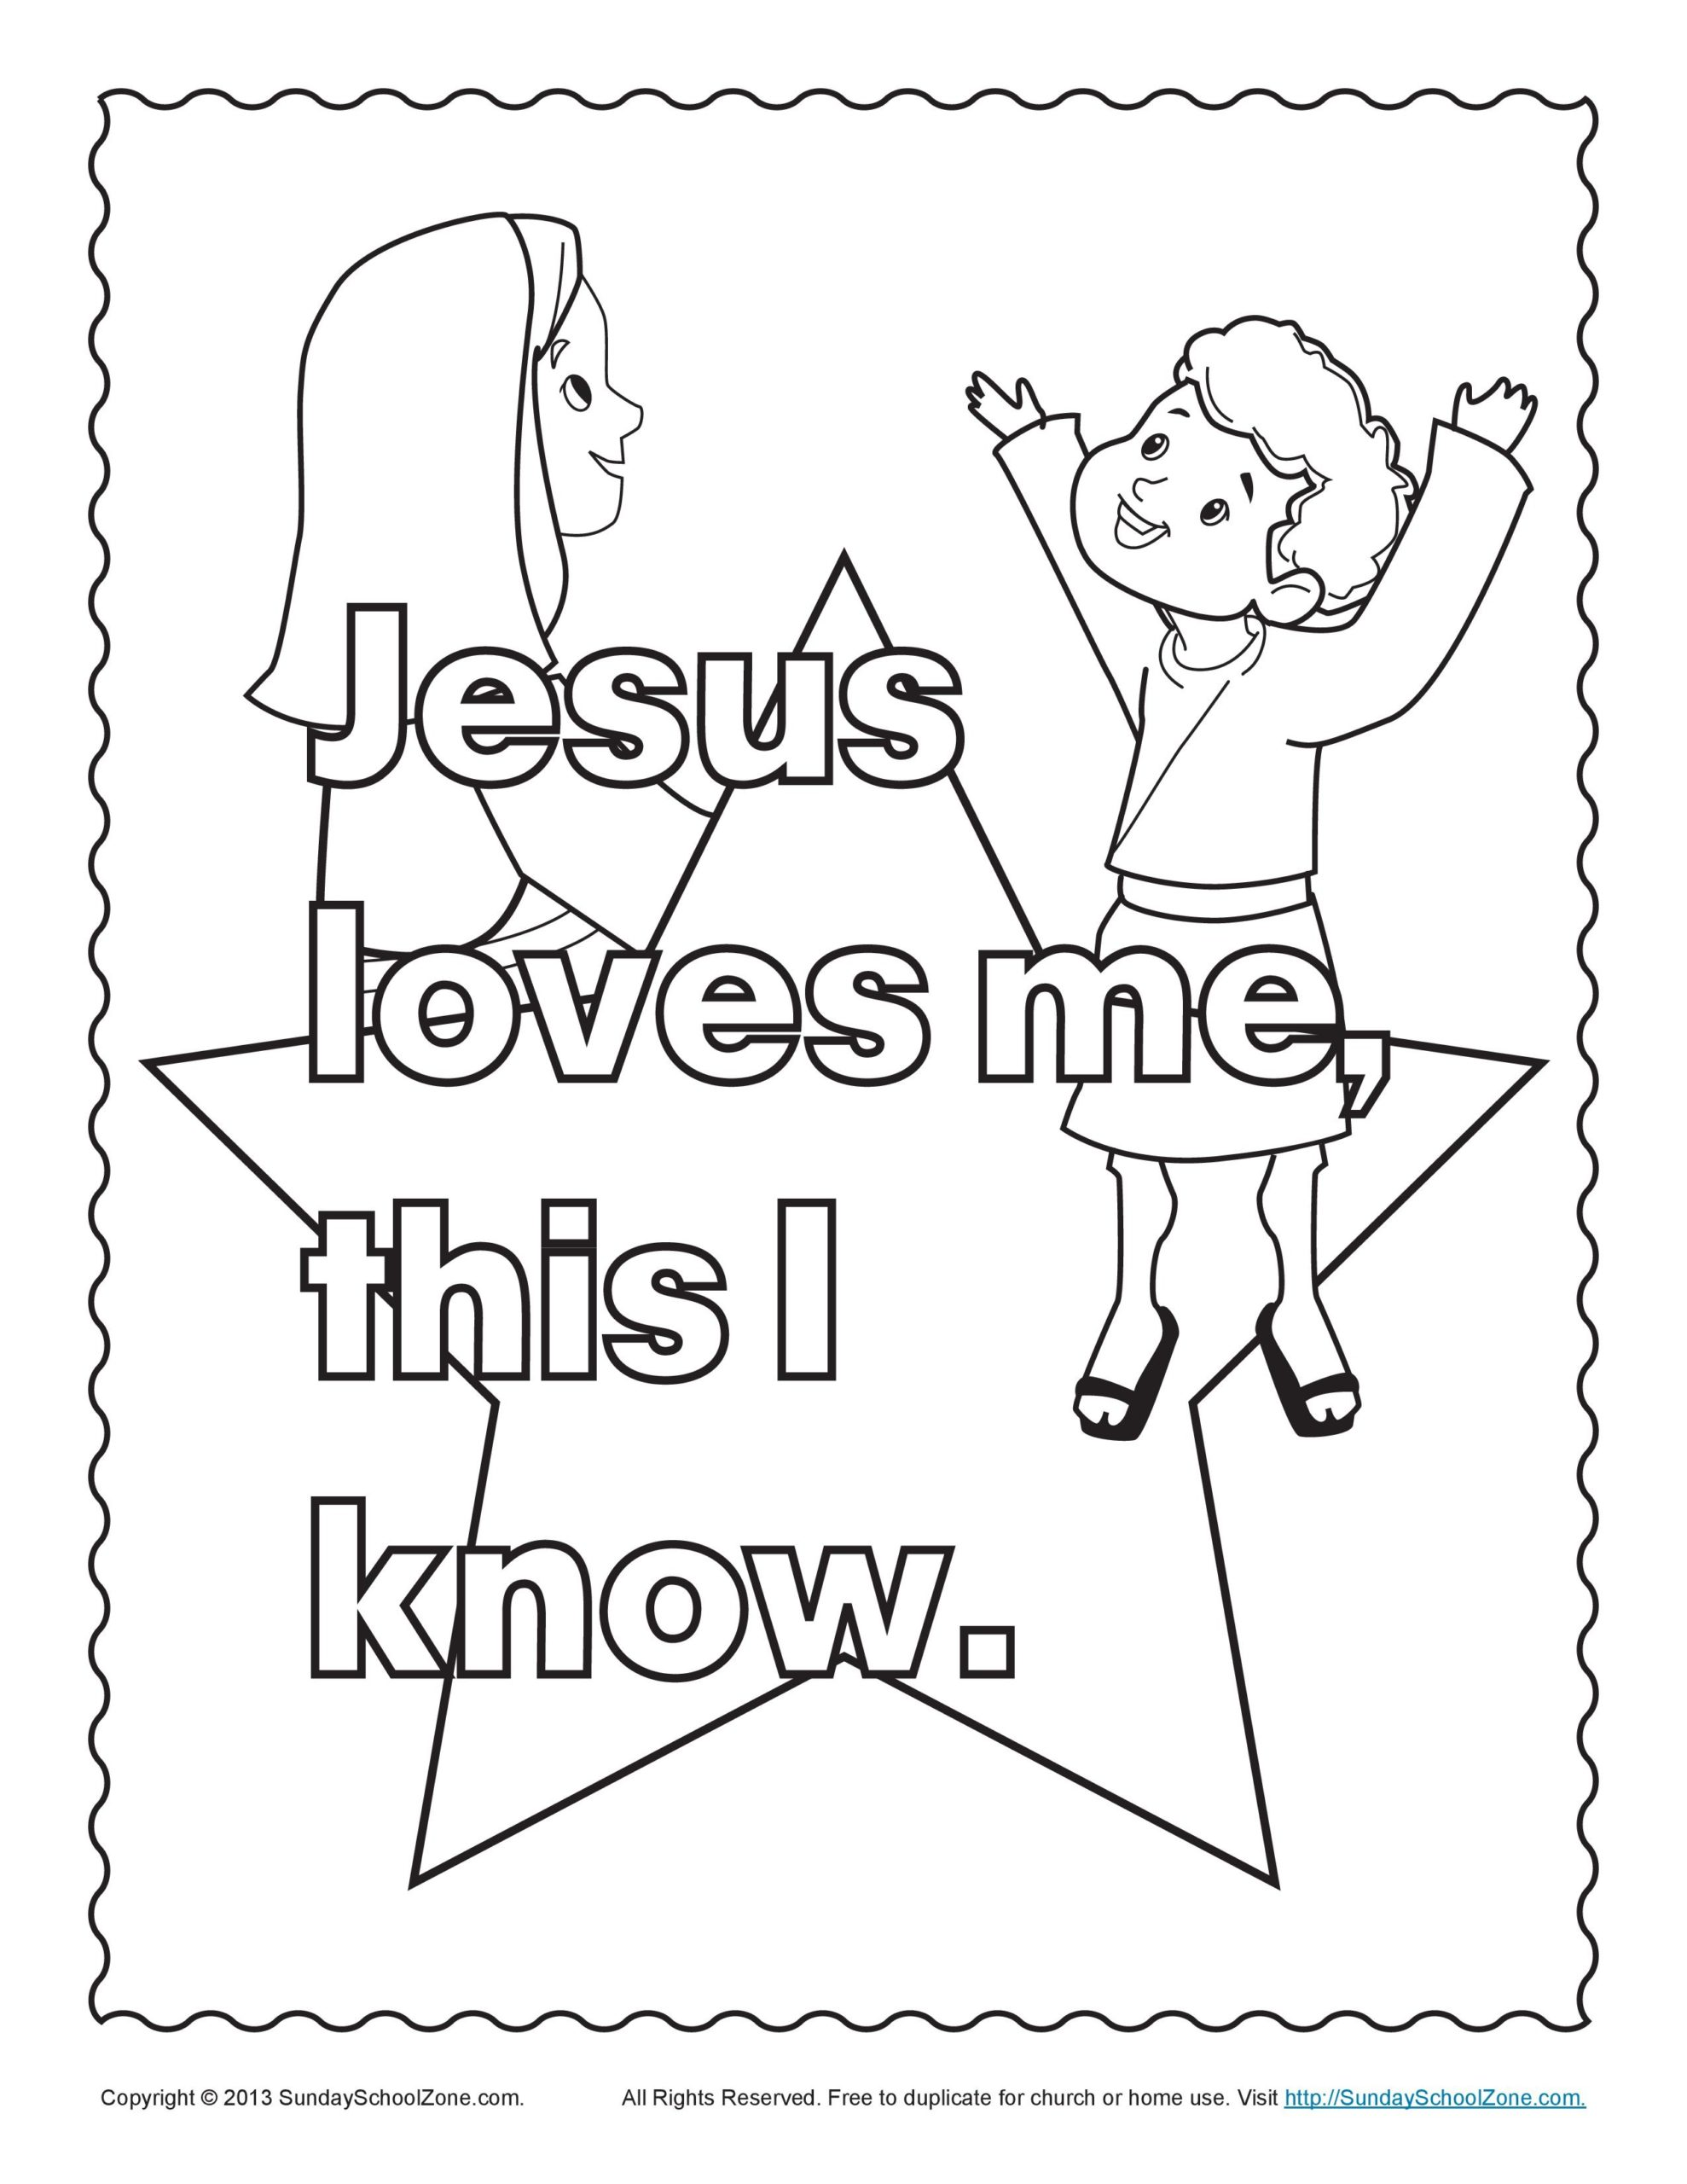 worksheet ~ Worksheet Bible Coloring For Kids Sunday School Toddler Book  Toddlers Free Pictures To Colour In Color Red Worksheets Easter Sheets  Printables Children Print And Spring Simple Books Phenomenal Free Printable